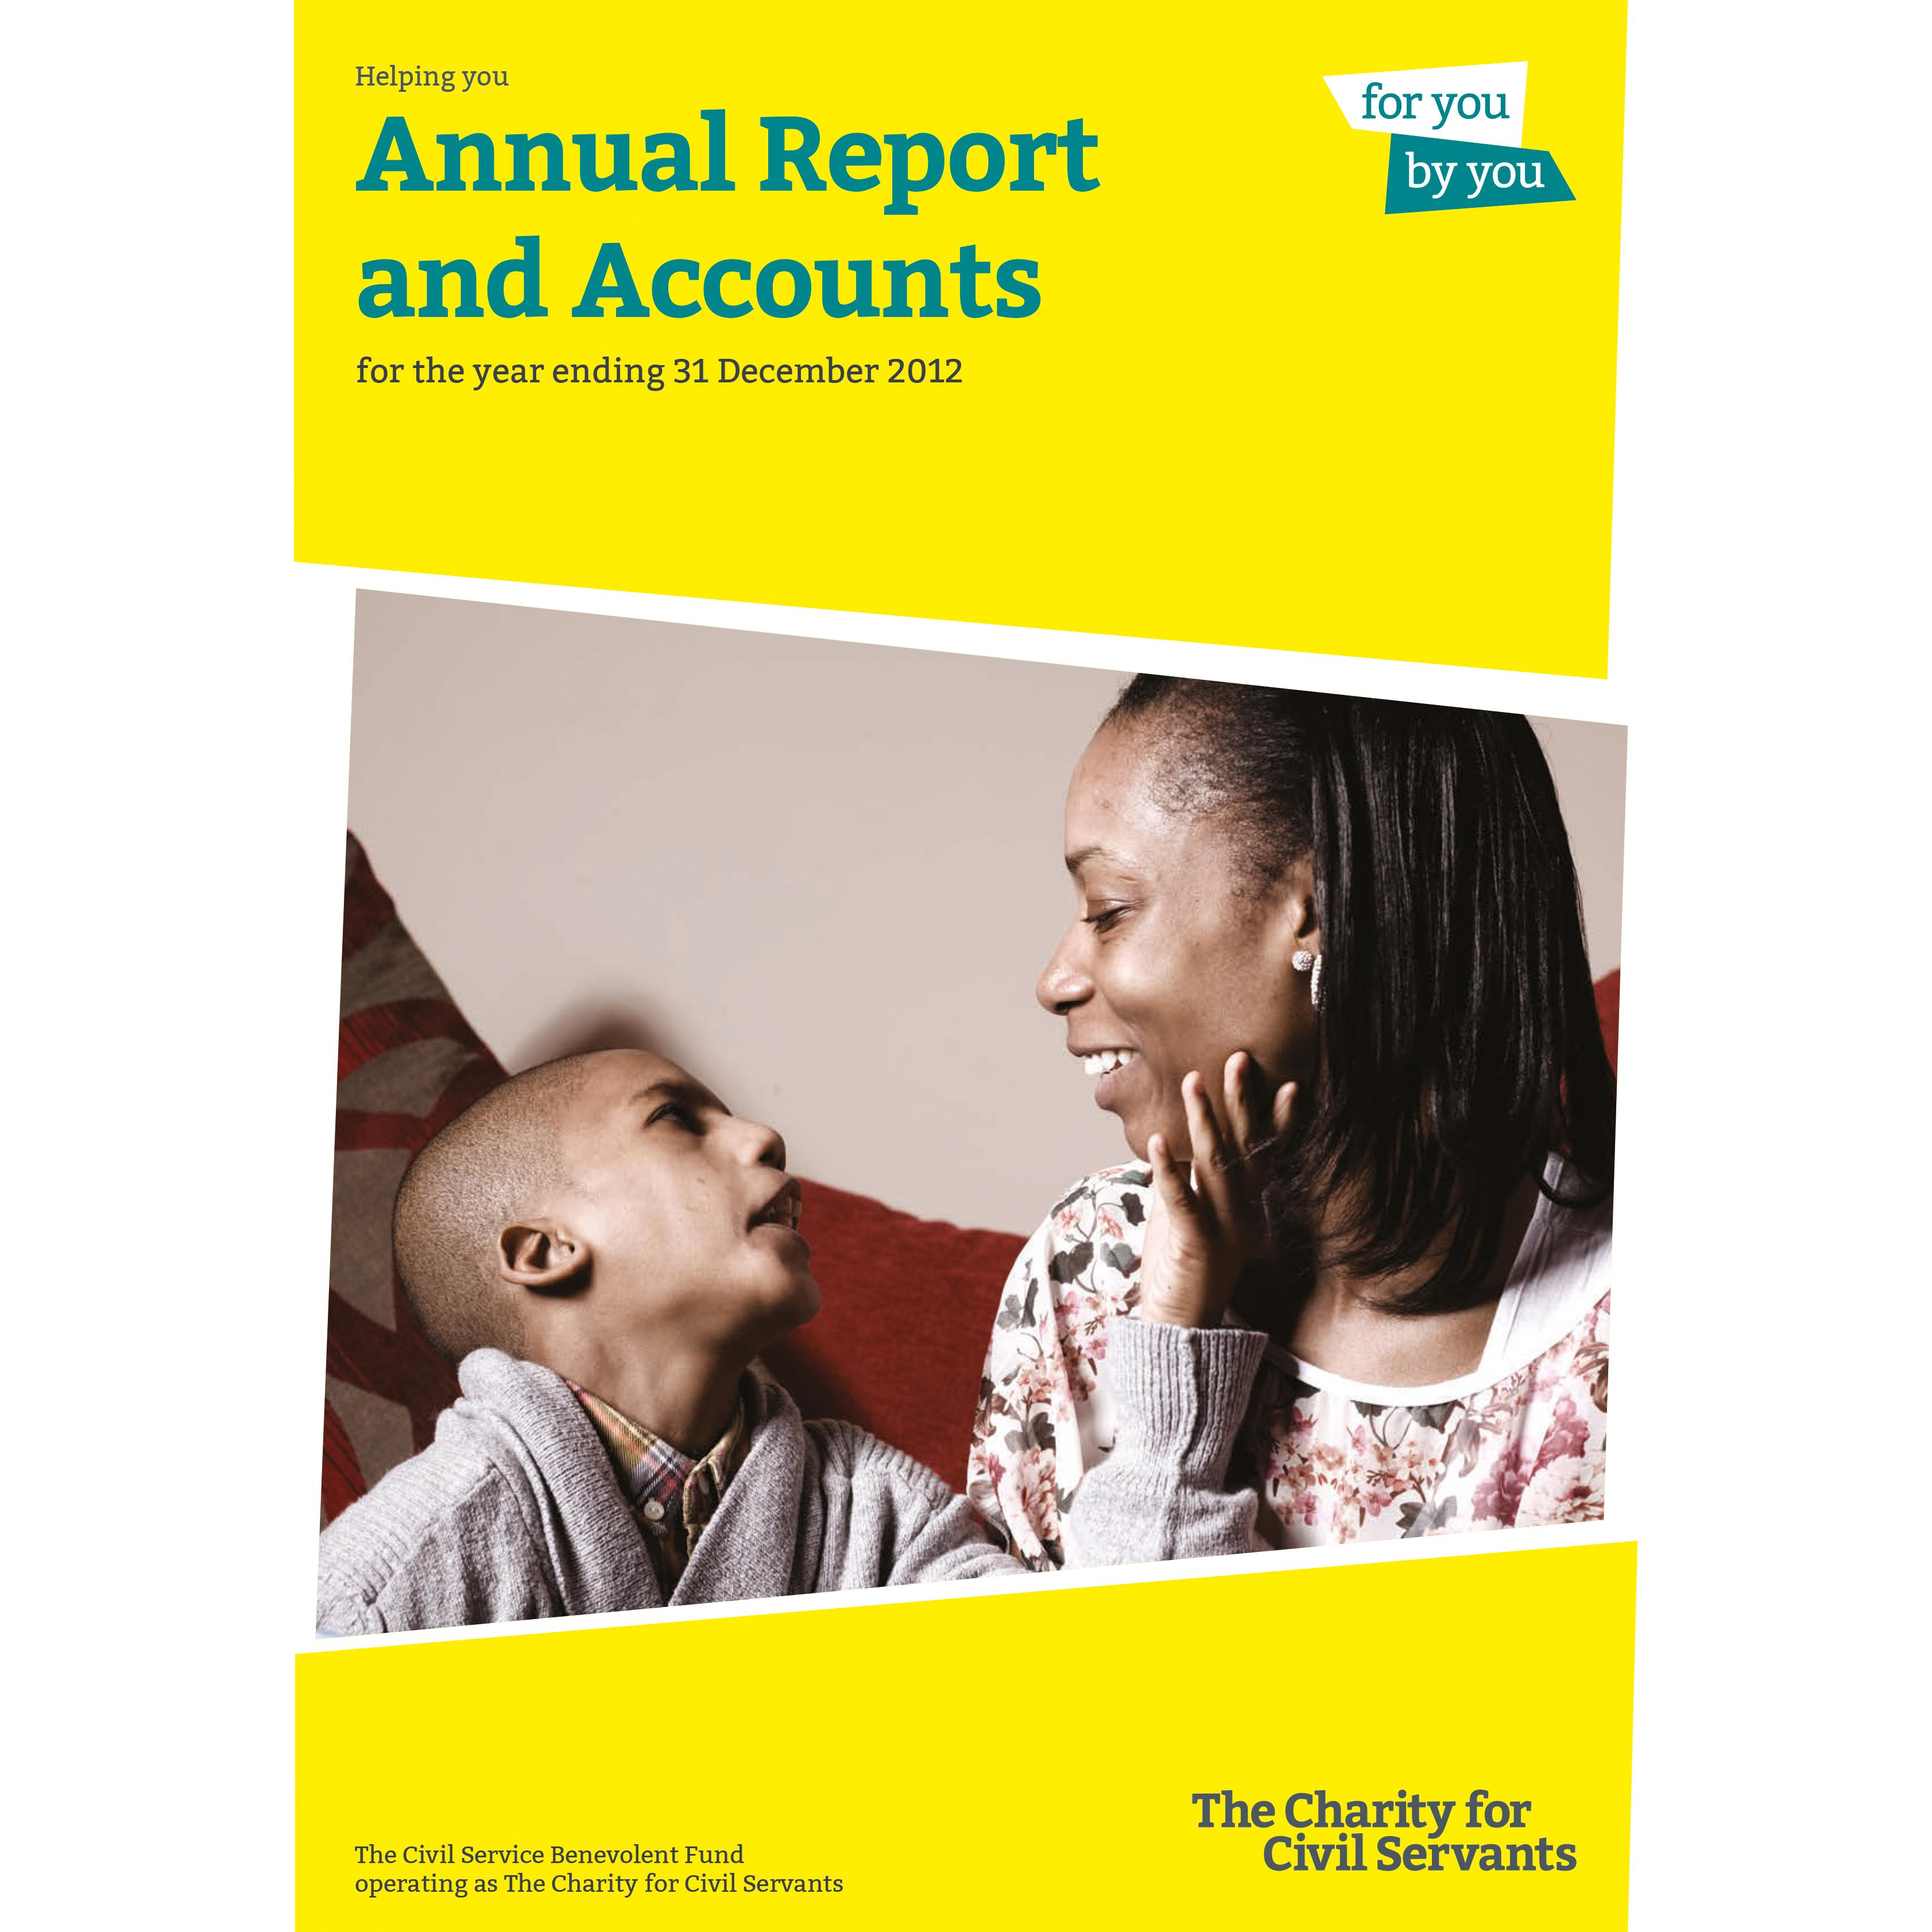 Annual Report and Accounts 2012